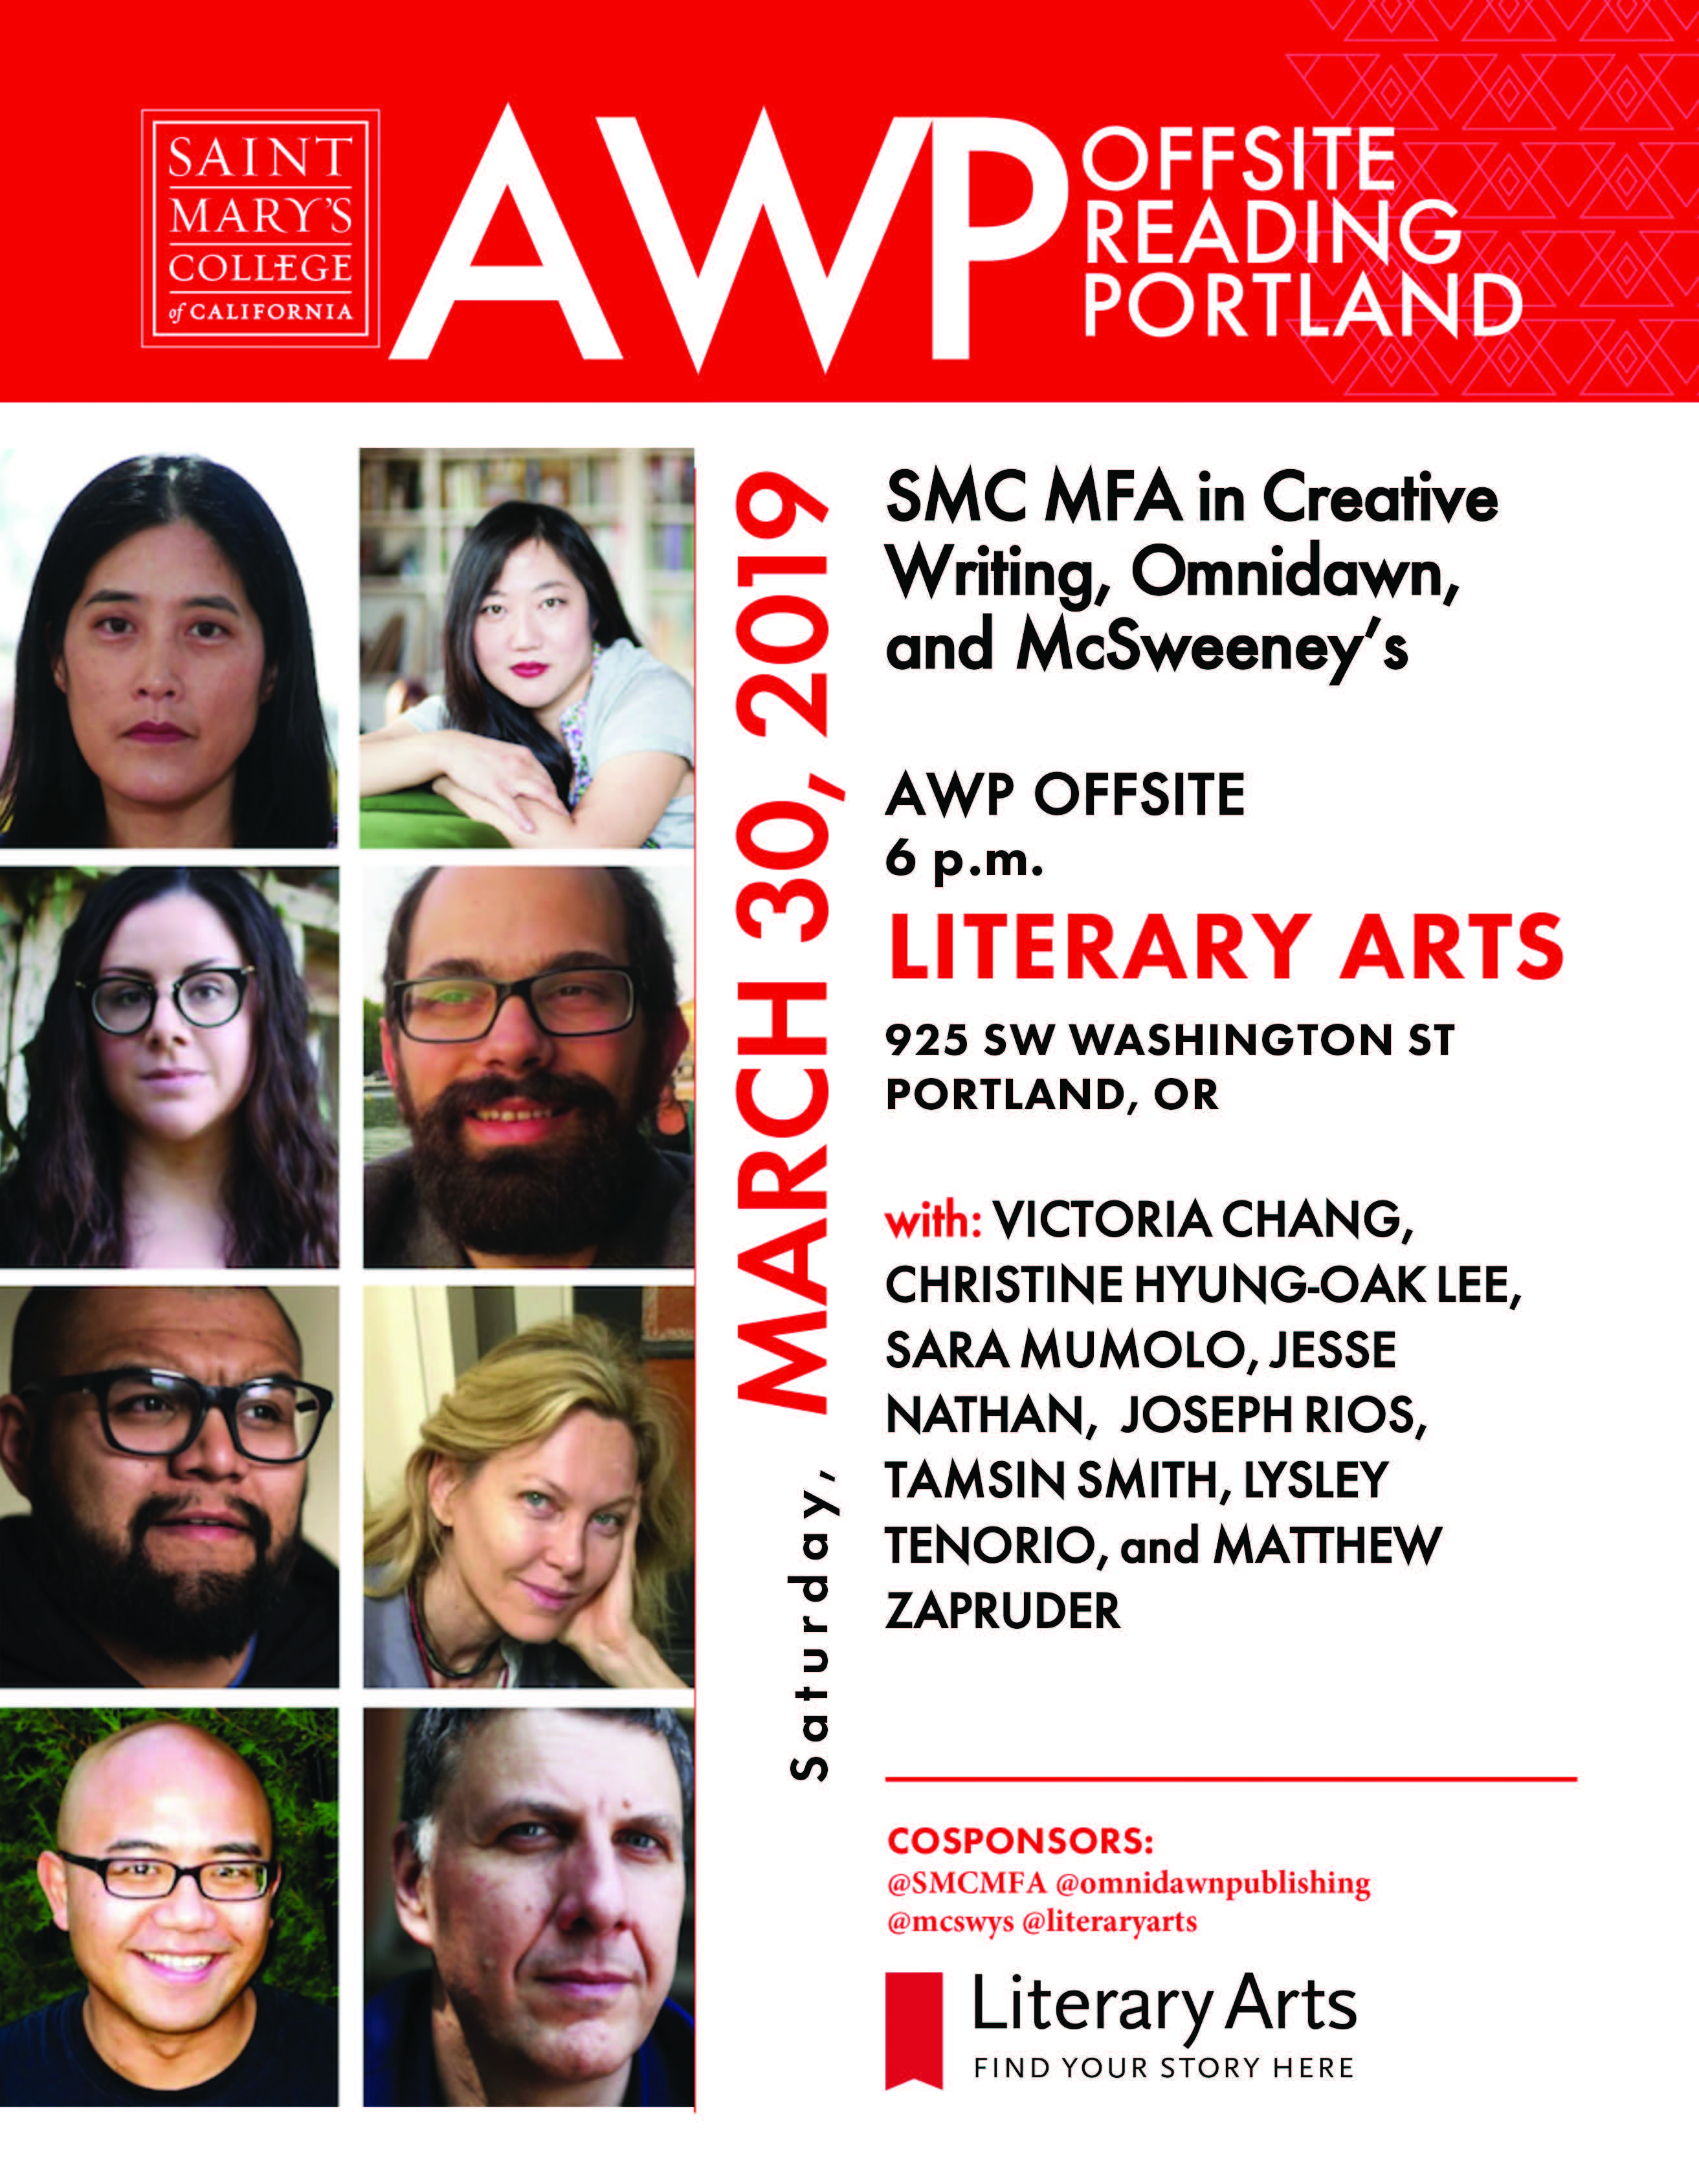 Smc Calendar 2019 SMC MFA, Omnidawn, and McSweeney's: AWP off site reading